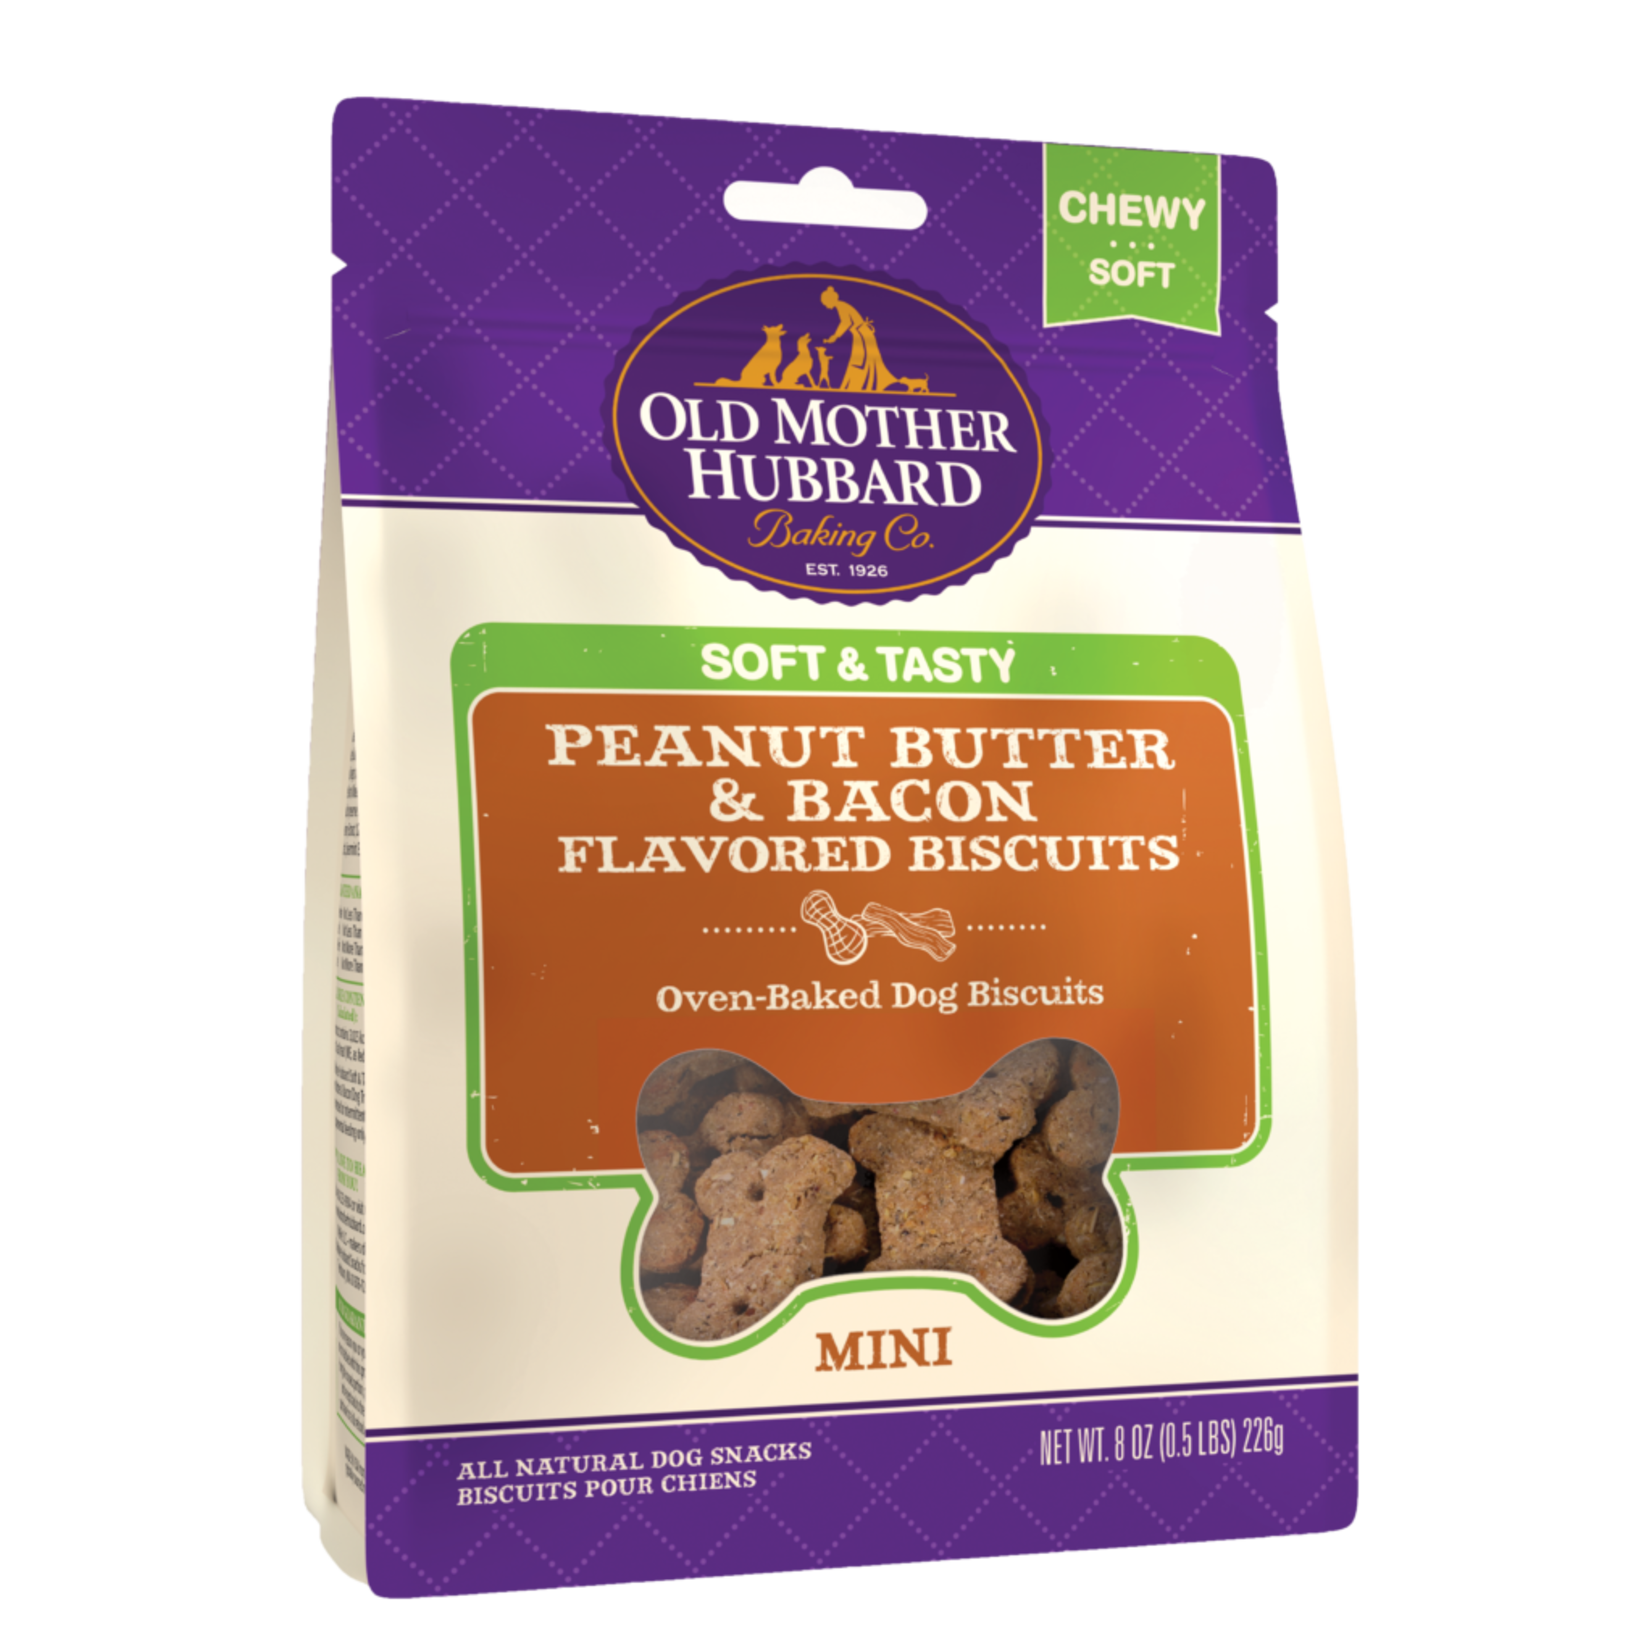 Old Mother Hubbard OMH Soft & Tasty Peanut Butter & Bacon 8oz